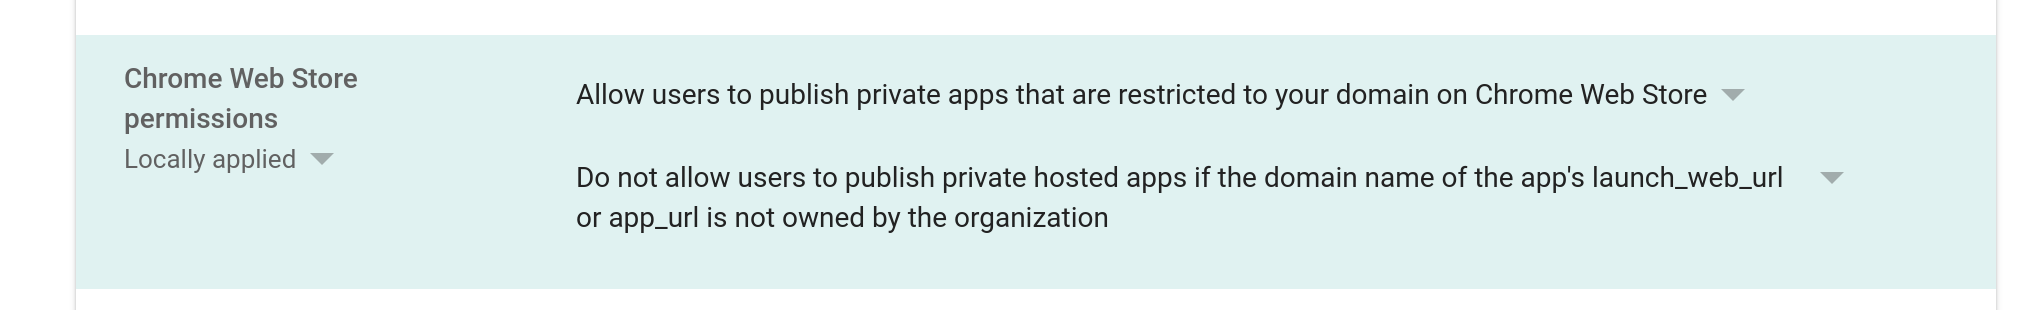 Screenshot of option to enable private domain publishing